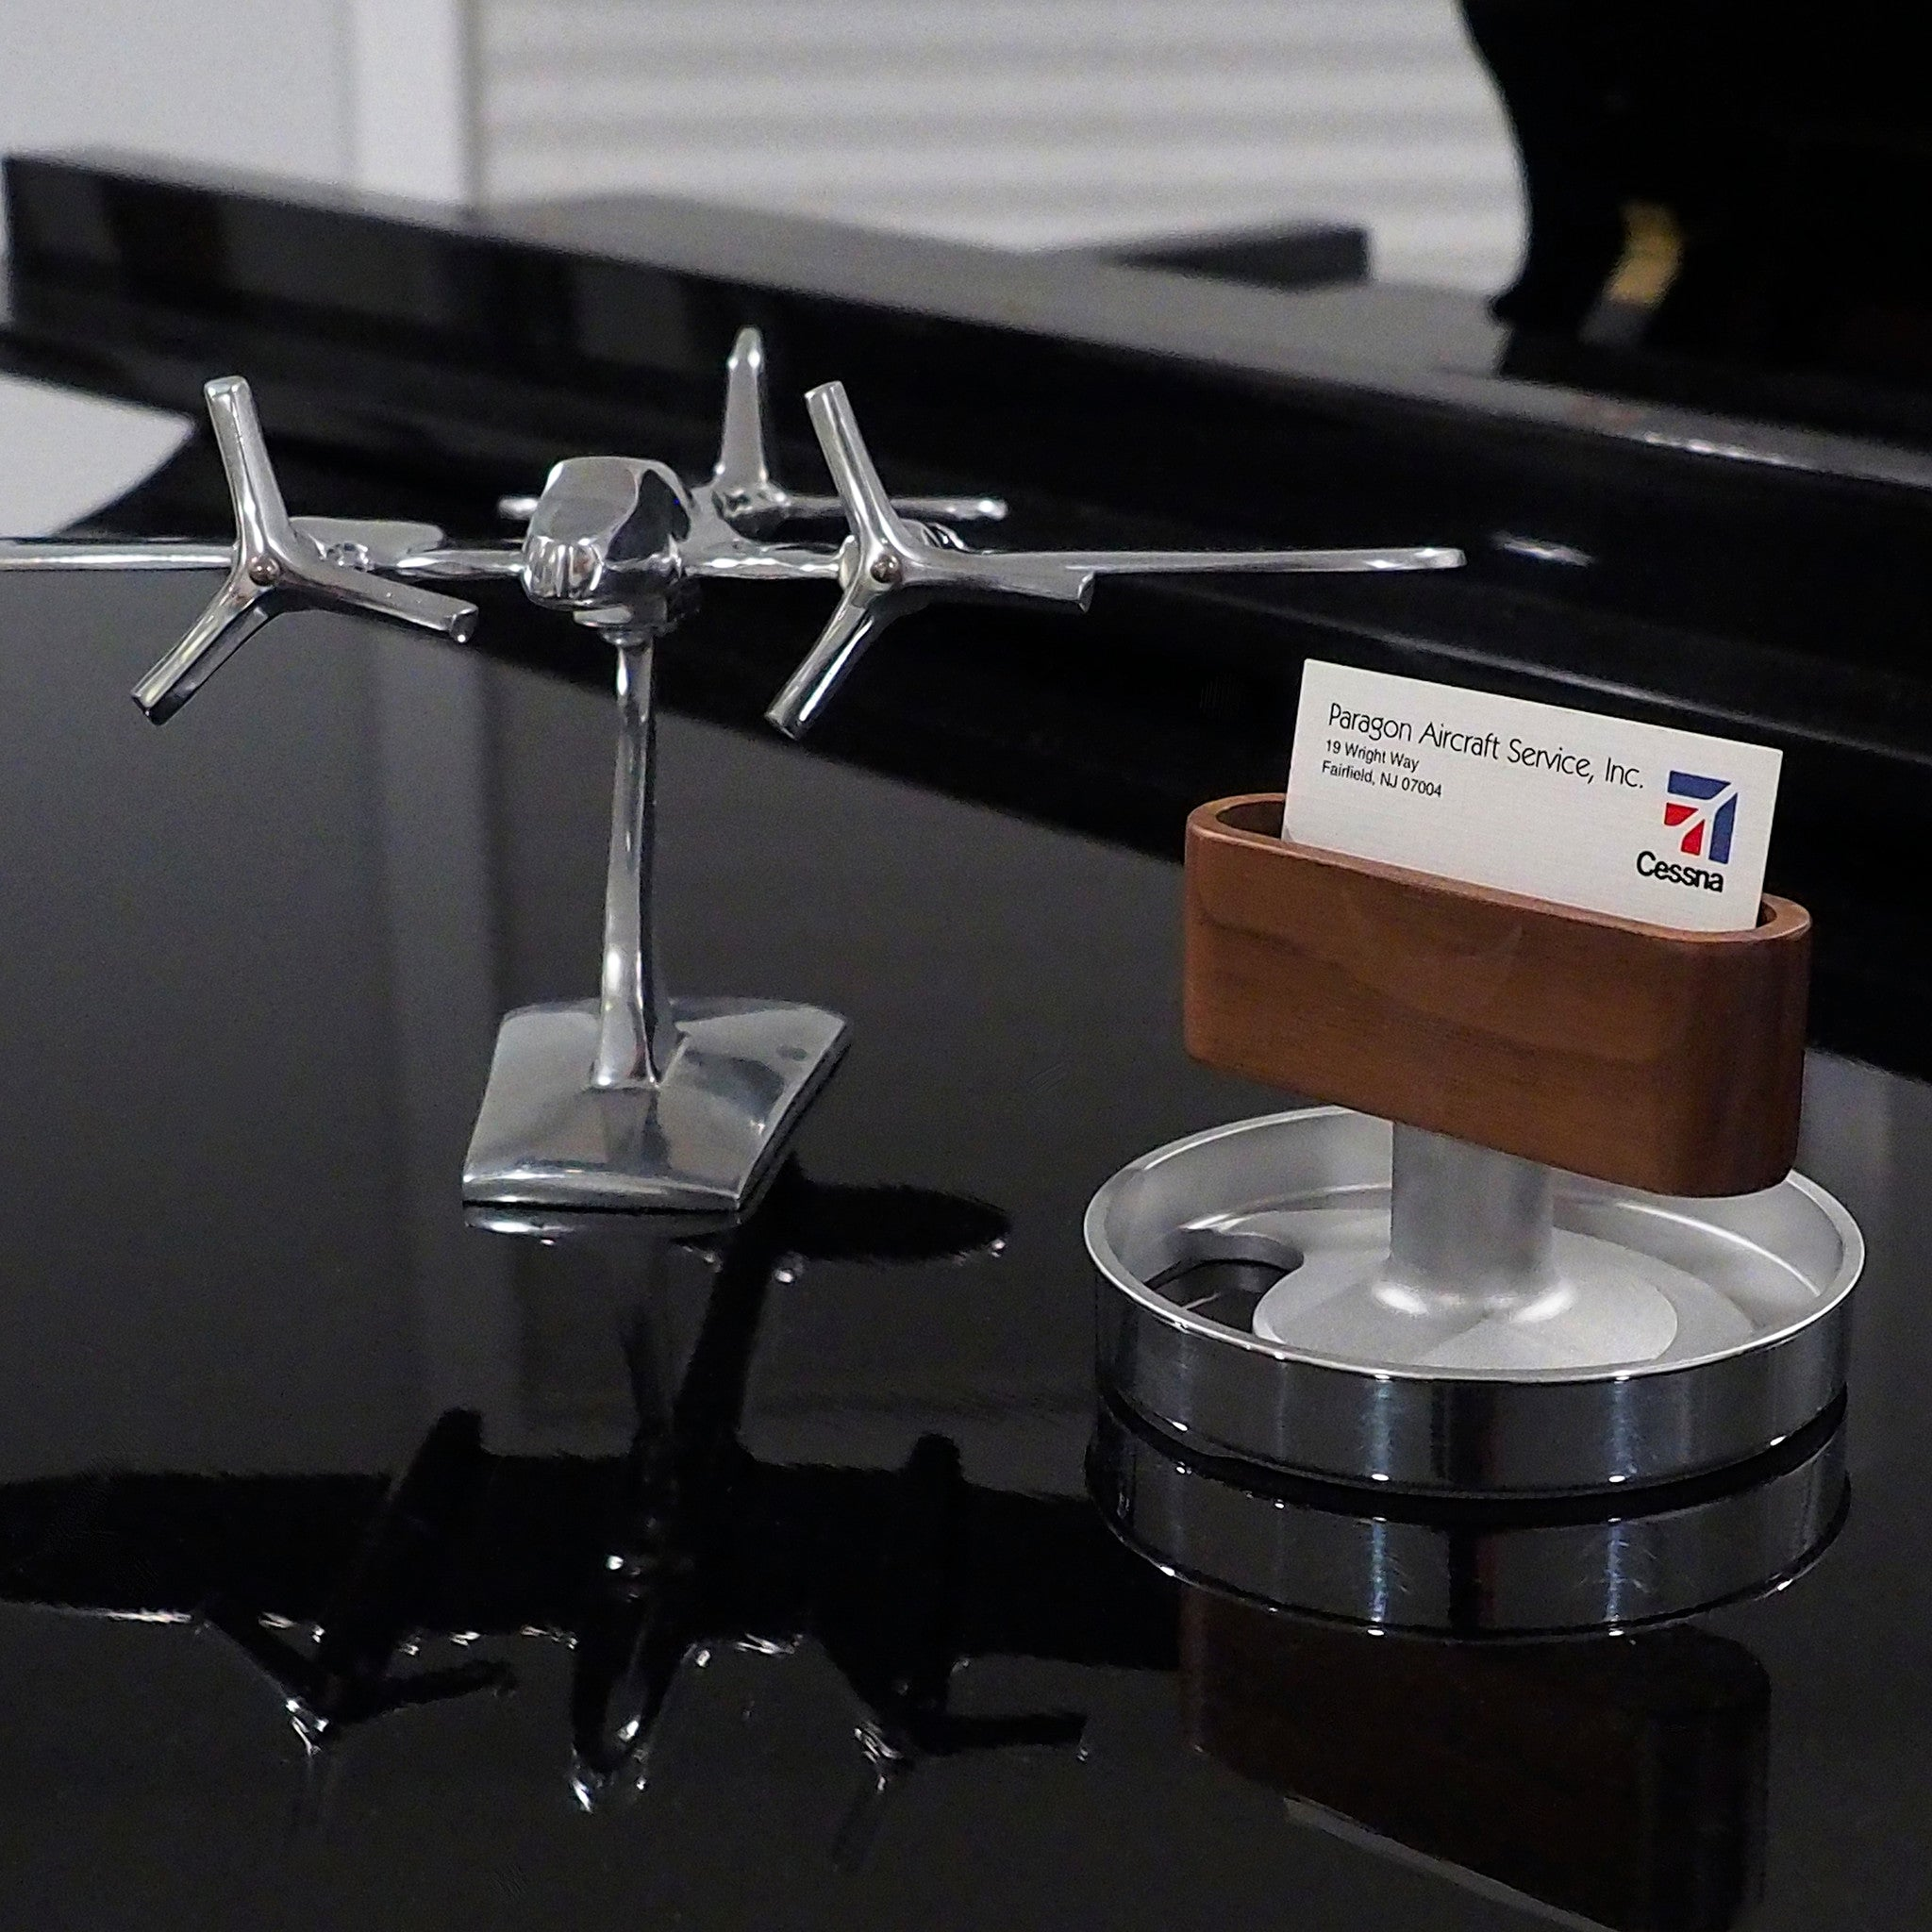 Mid Century Modern Aviation Art Floating Business Card Display Stand ...